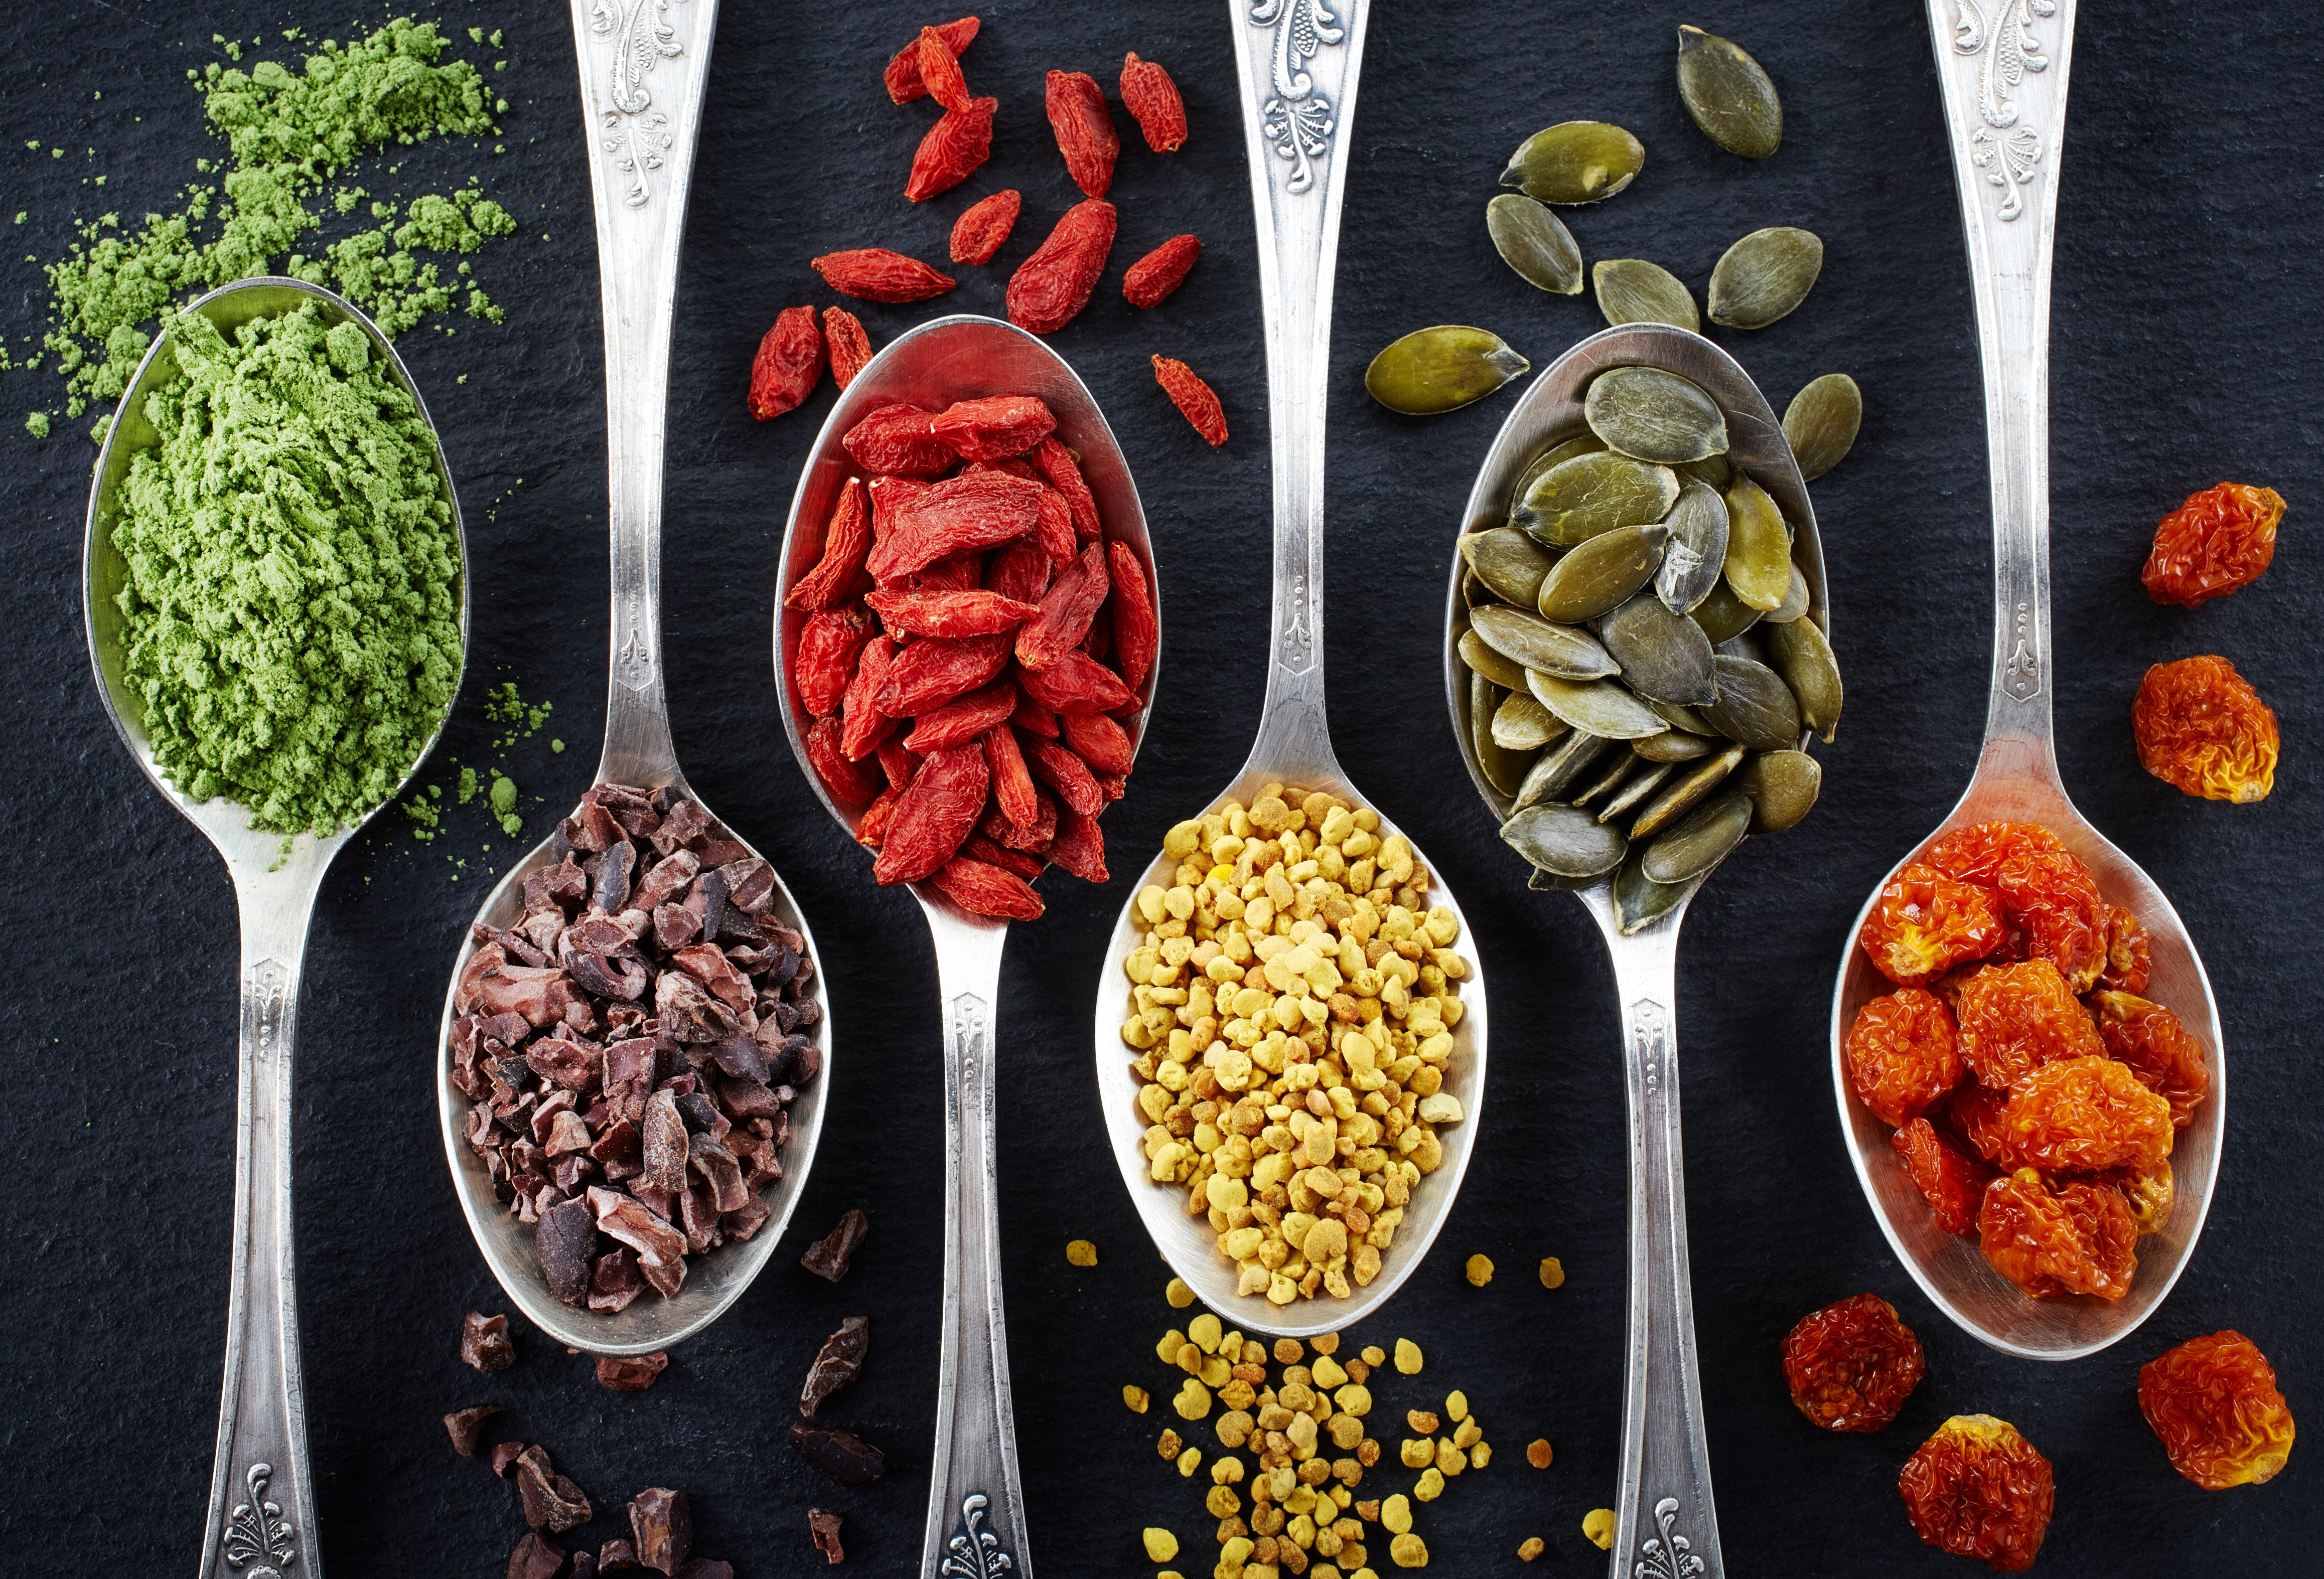 STAY YOUNG WITH SUPERFOODS